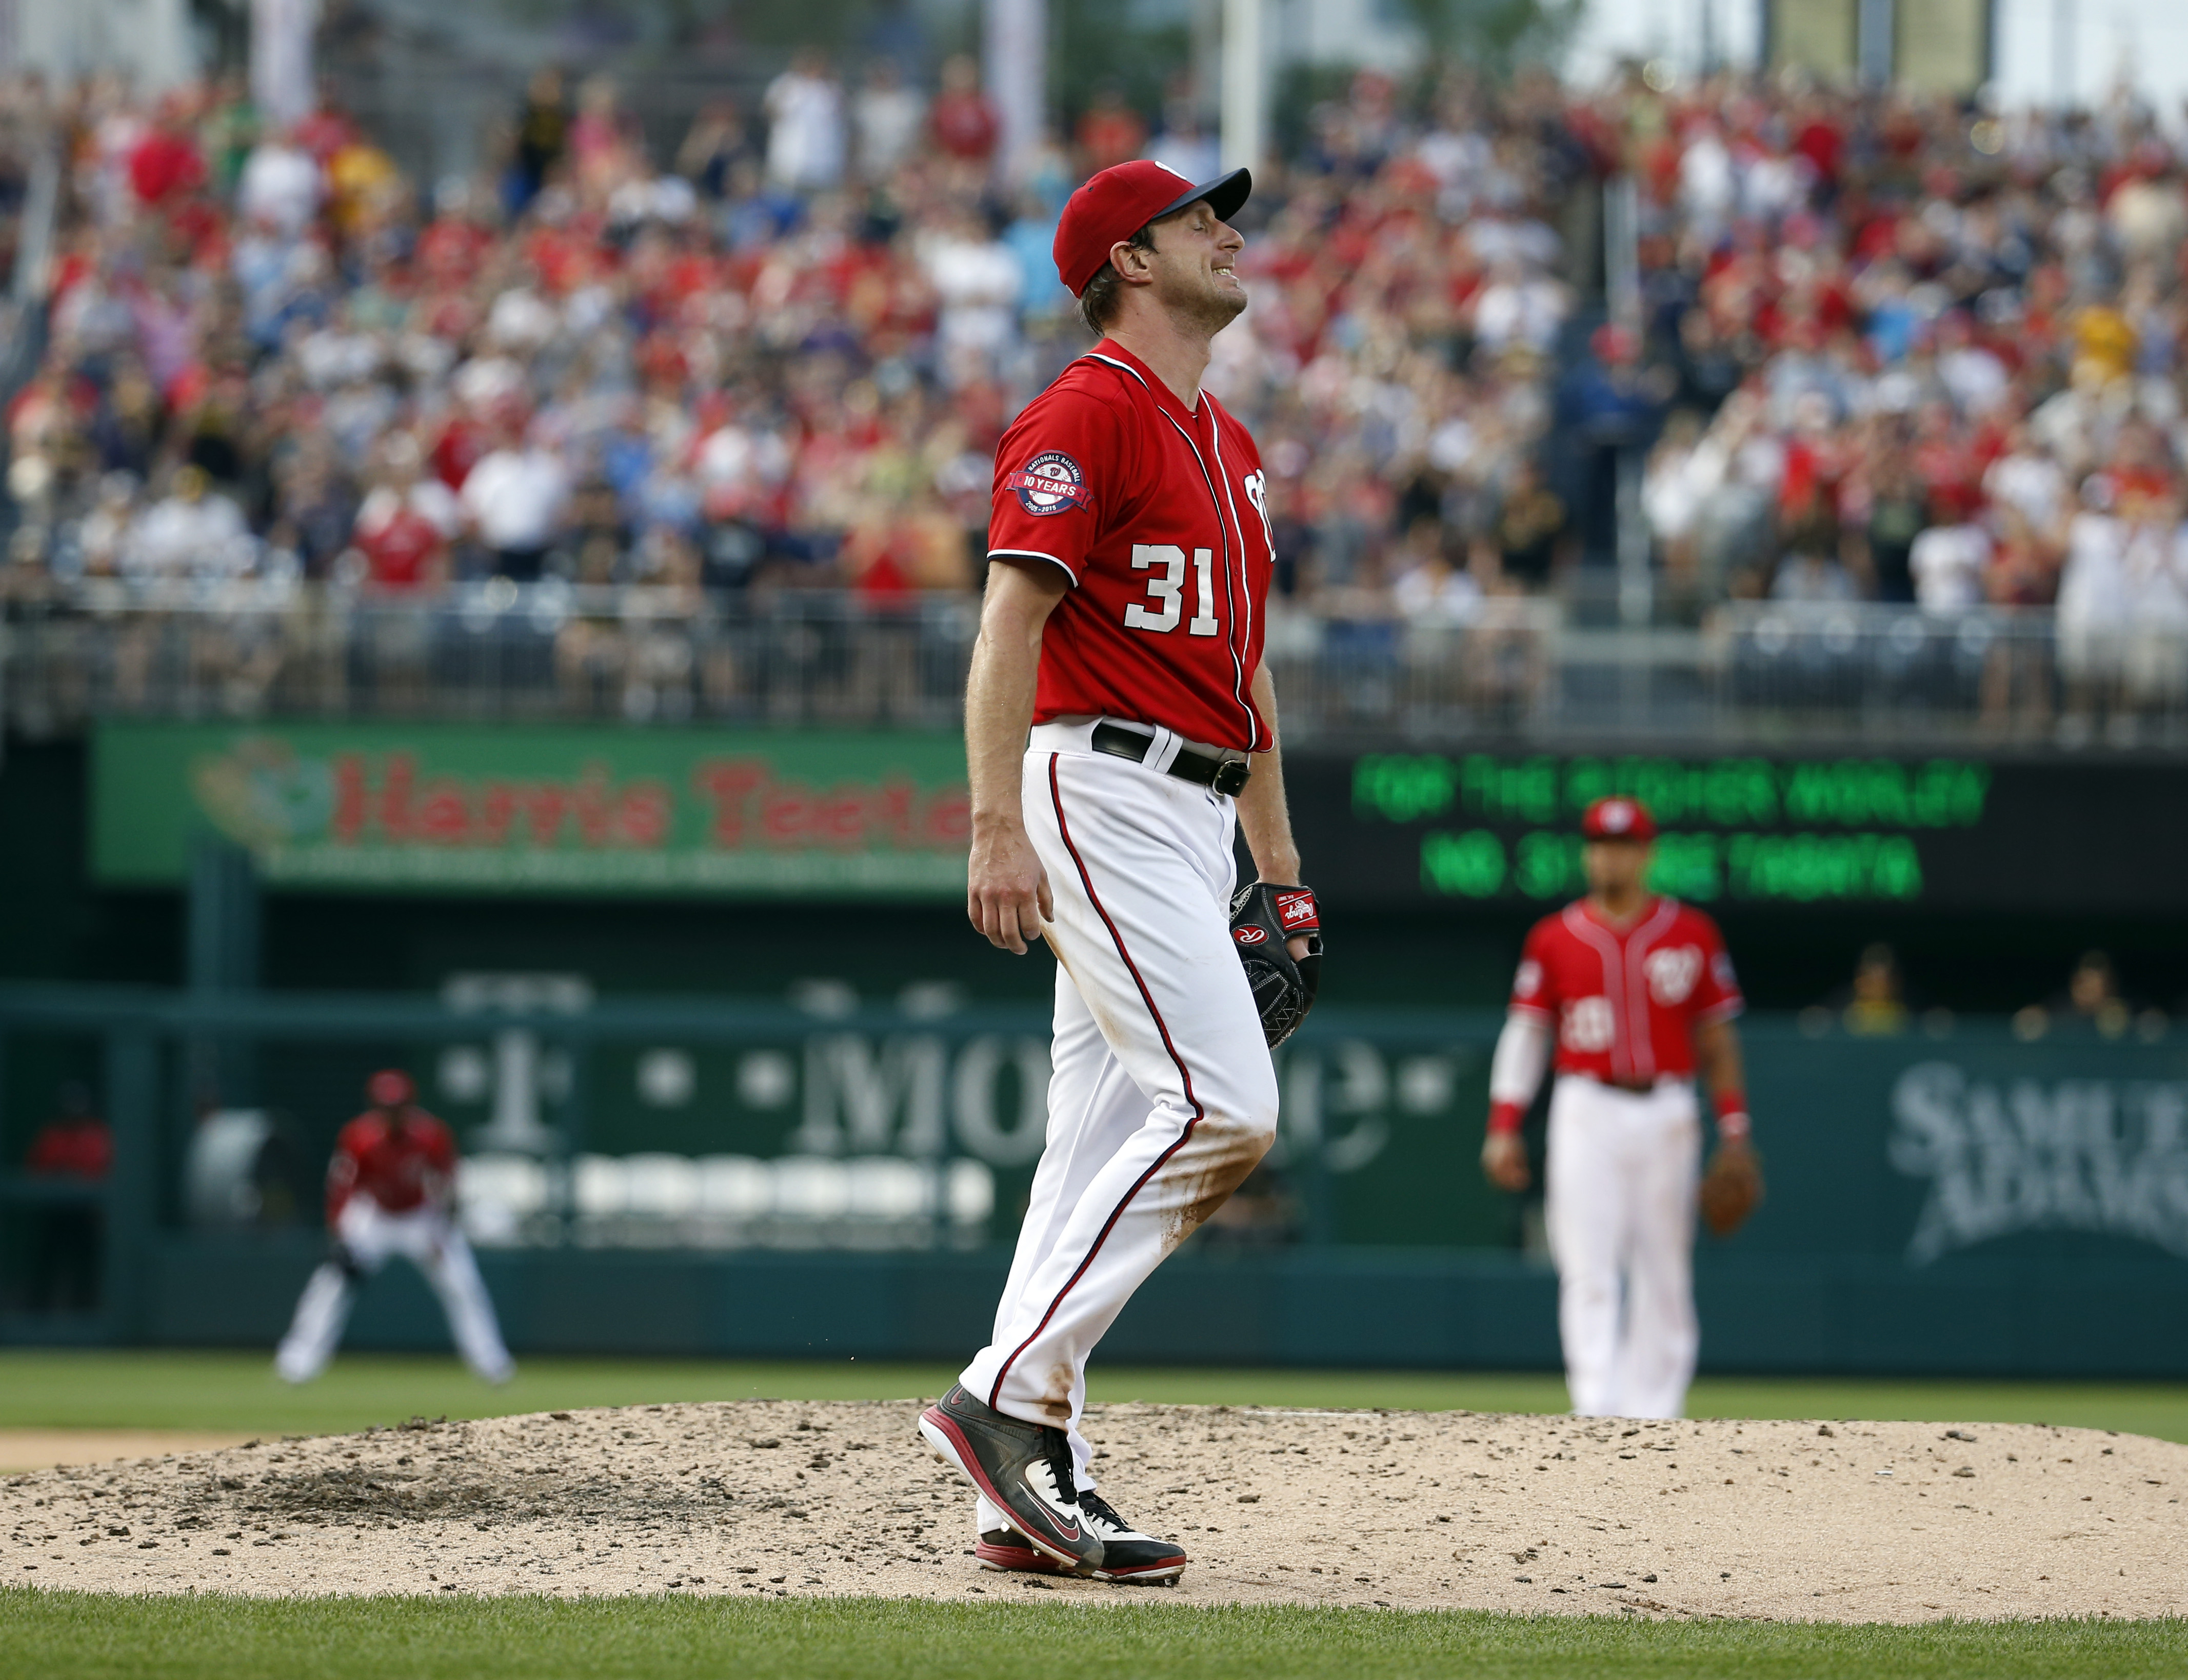 Washington Nationals starting pitcher Max Scherzer reacts after hitting Pittsburgh Pirates pinch hitter Jose Tabata during the ninth inning of a baseball game at Nationals Park, Saturday, June 20, 2015, in Washington. Scherzer threw a no-hitter and the Na